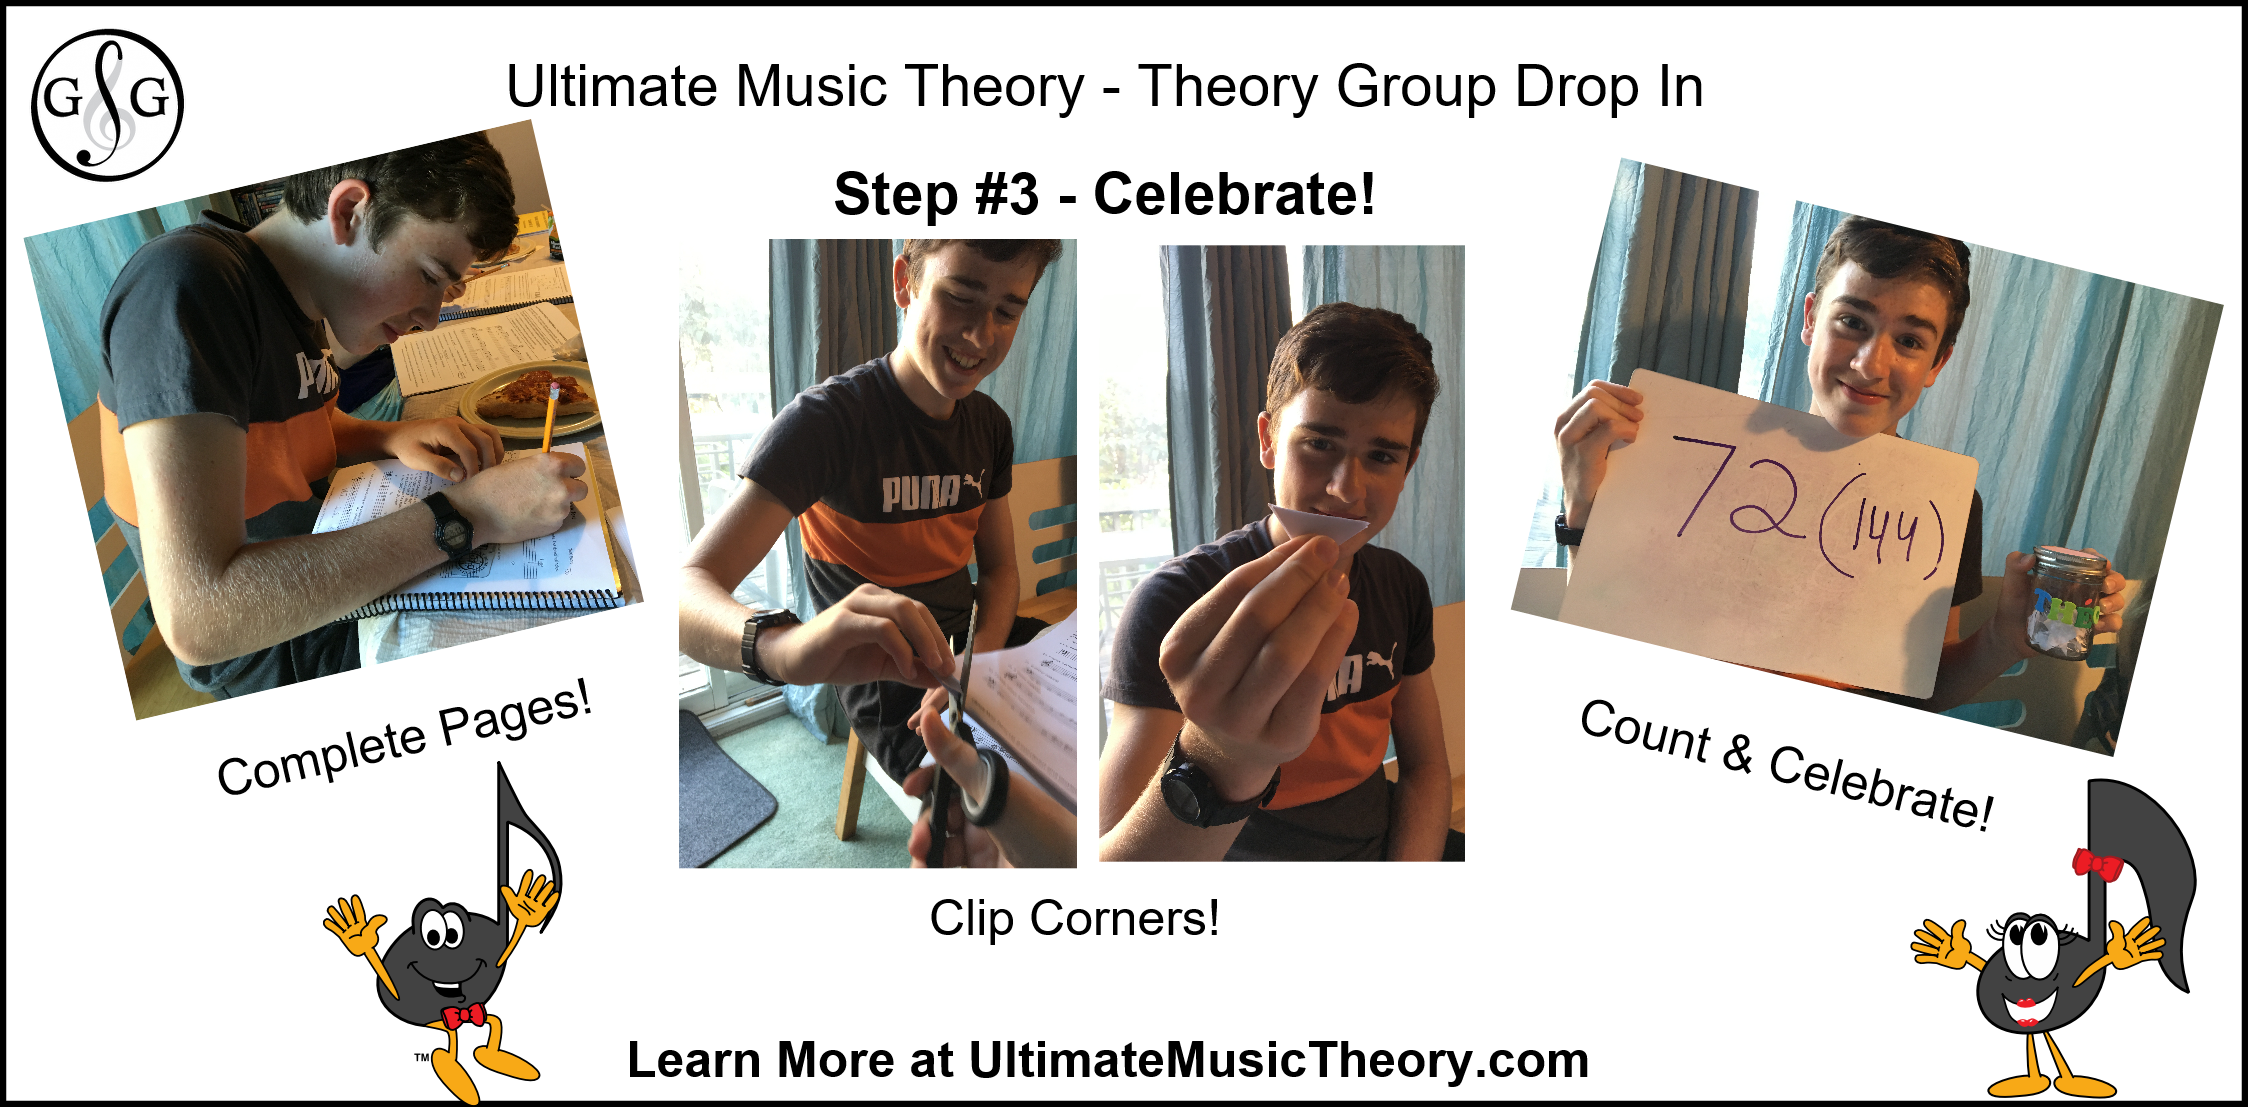 Ultimate Music Theory Group Drop In